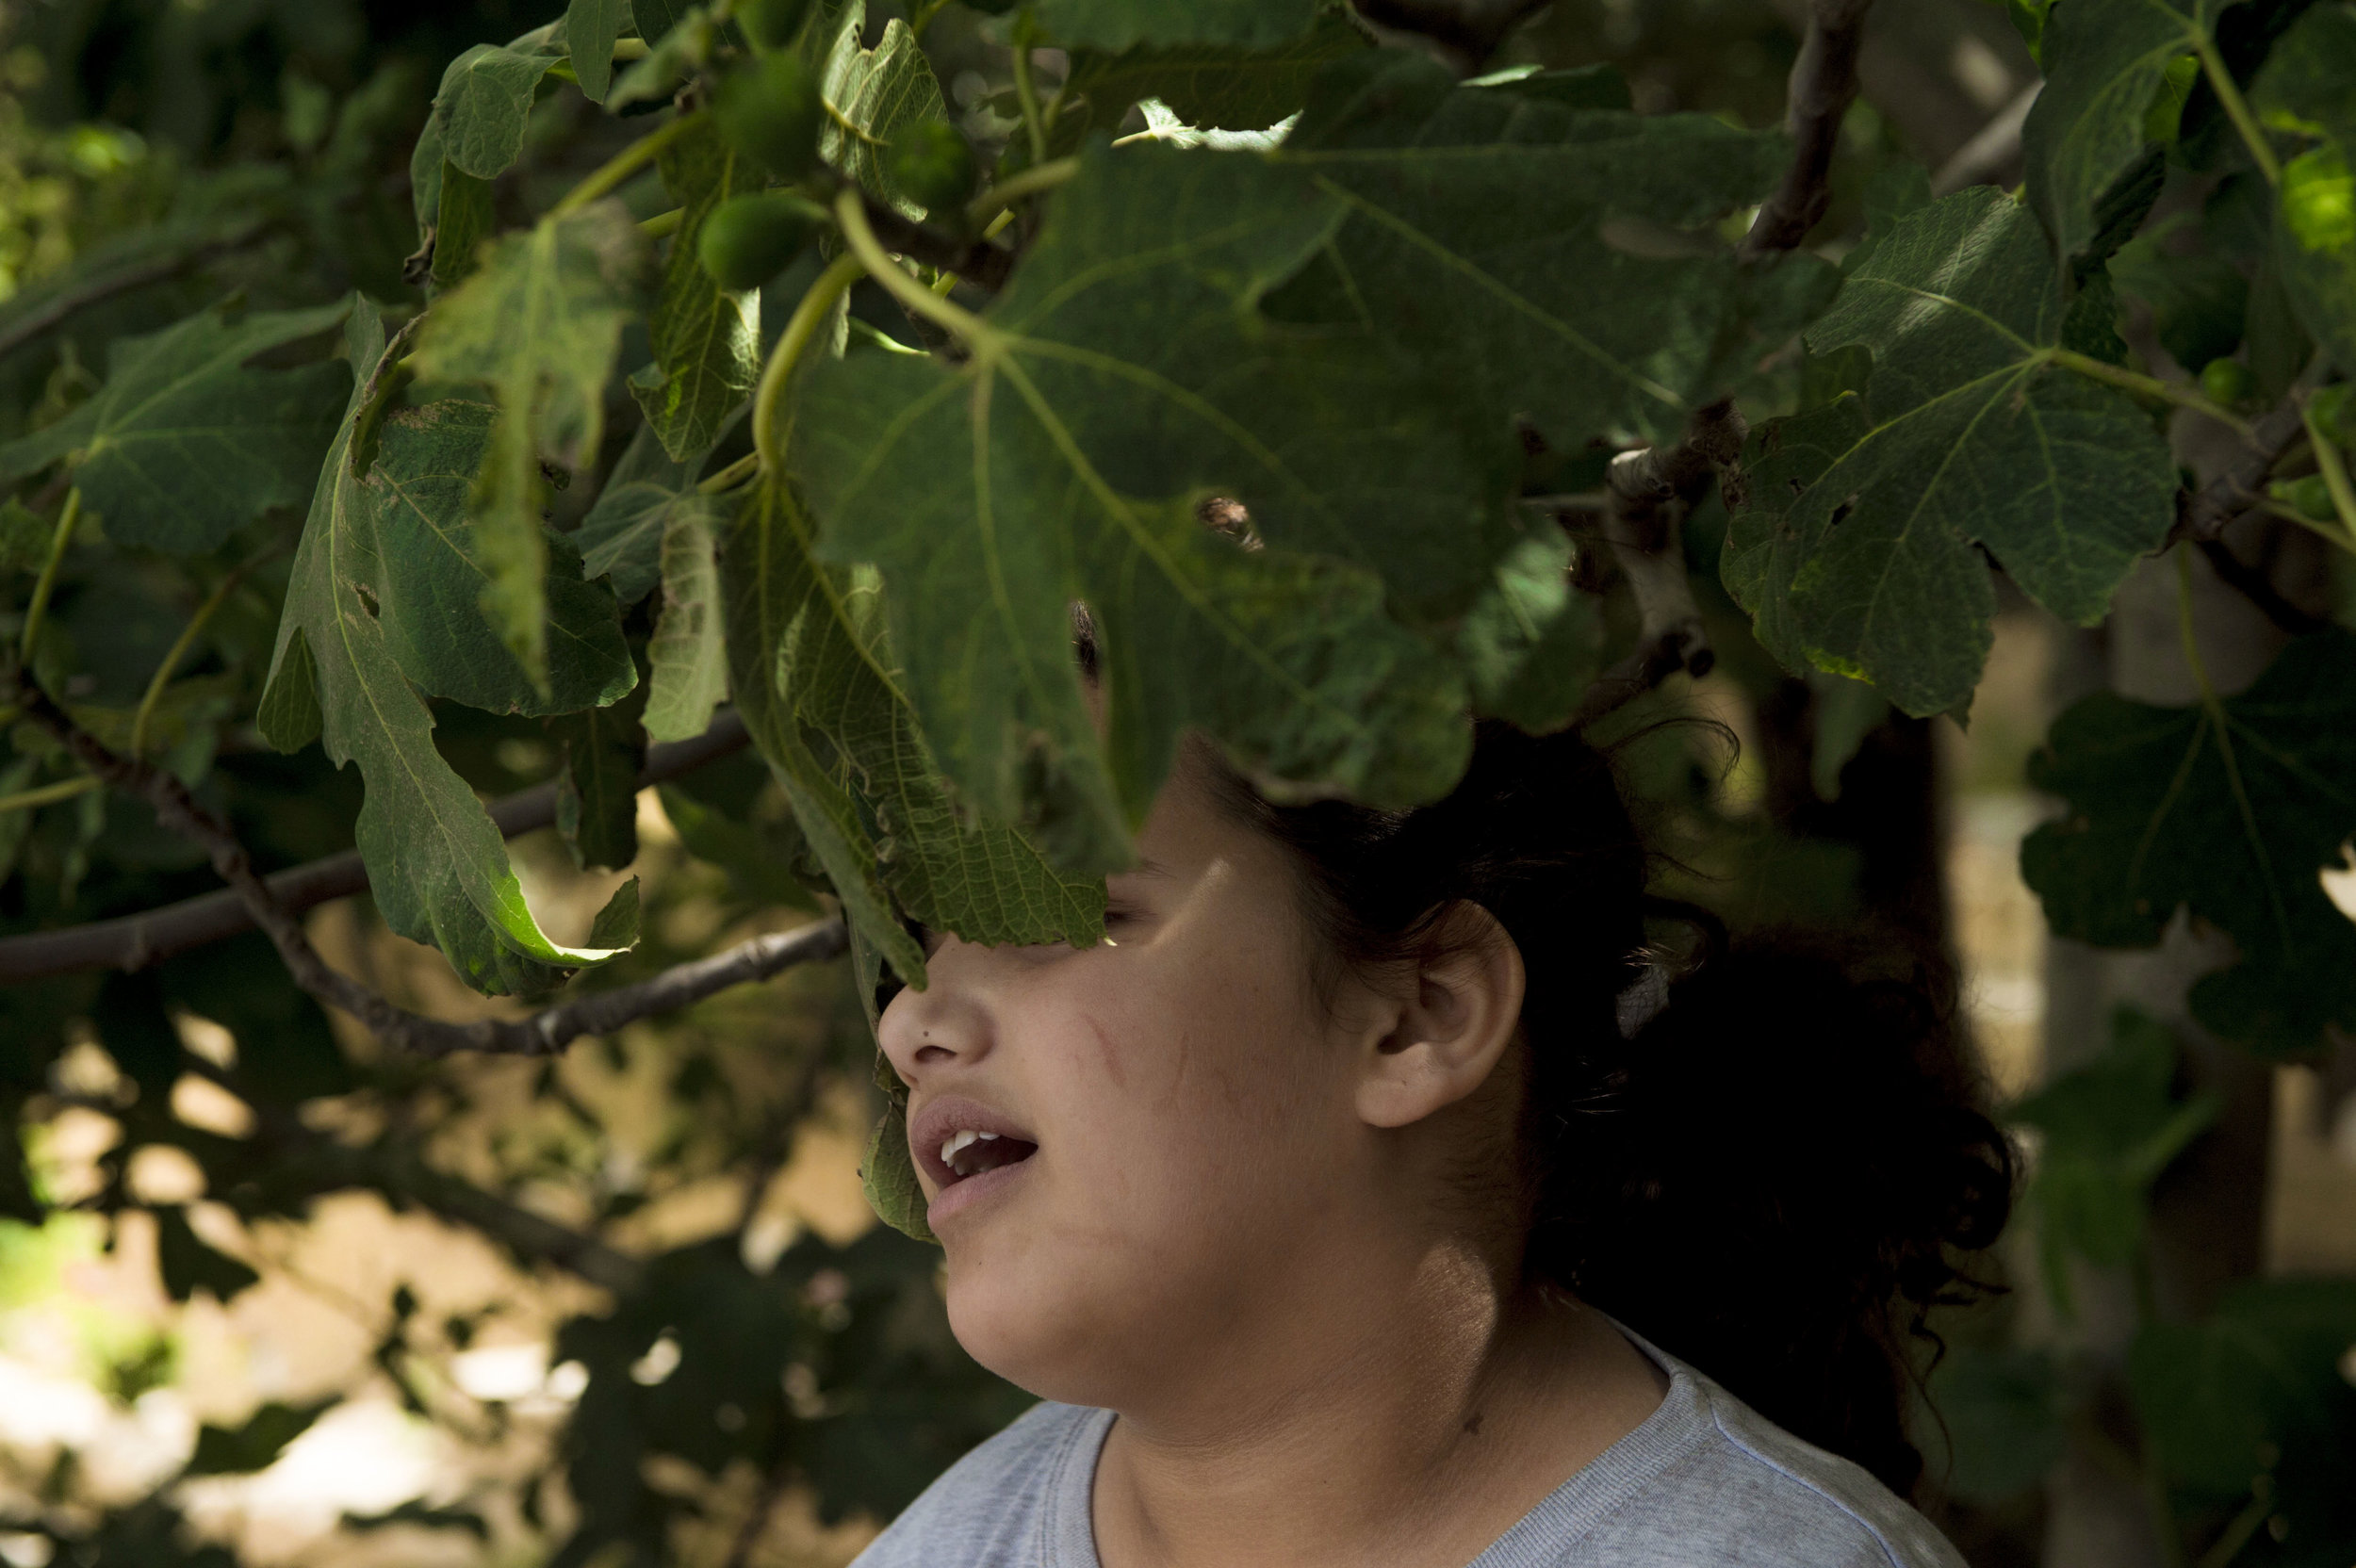 Amira reacts to leaves touching her face during recess at the Peace Center for the Blind in East Jerusalem. Many of the students are not completely blind however have severe limitations with their vision. The students rely on other stimuli such as sound and touch to understand the world and their surroundings.